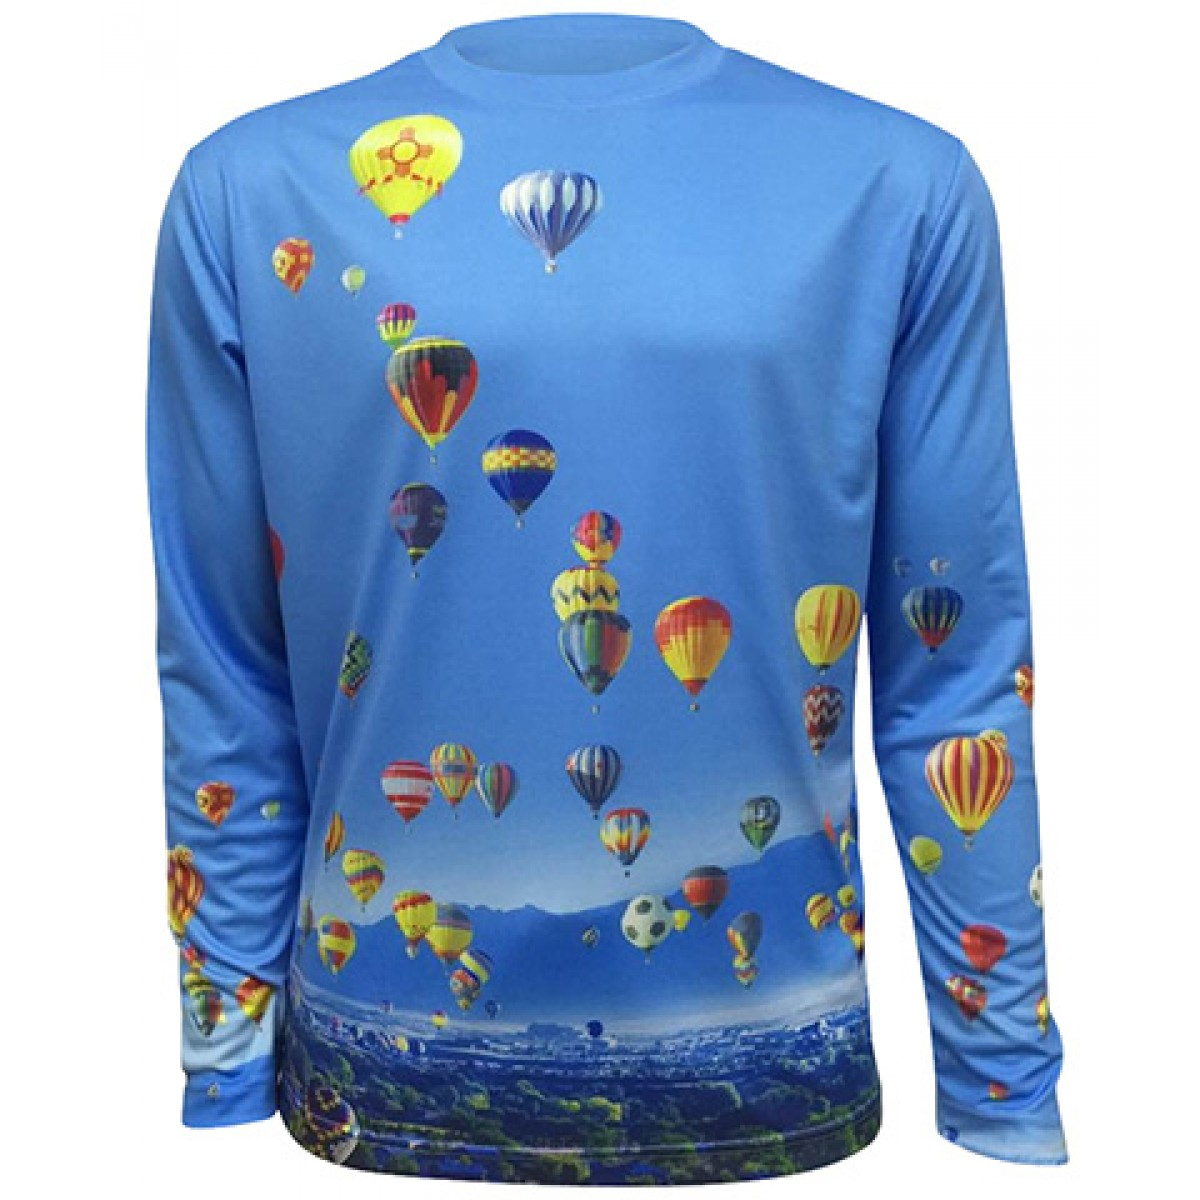 AIBF Sublimated Long Sleeve-Blue-2XL